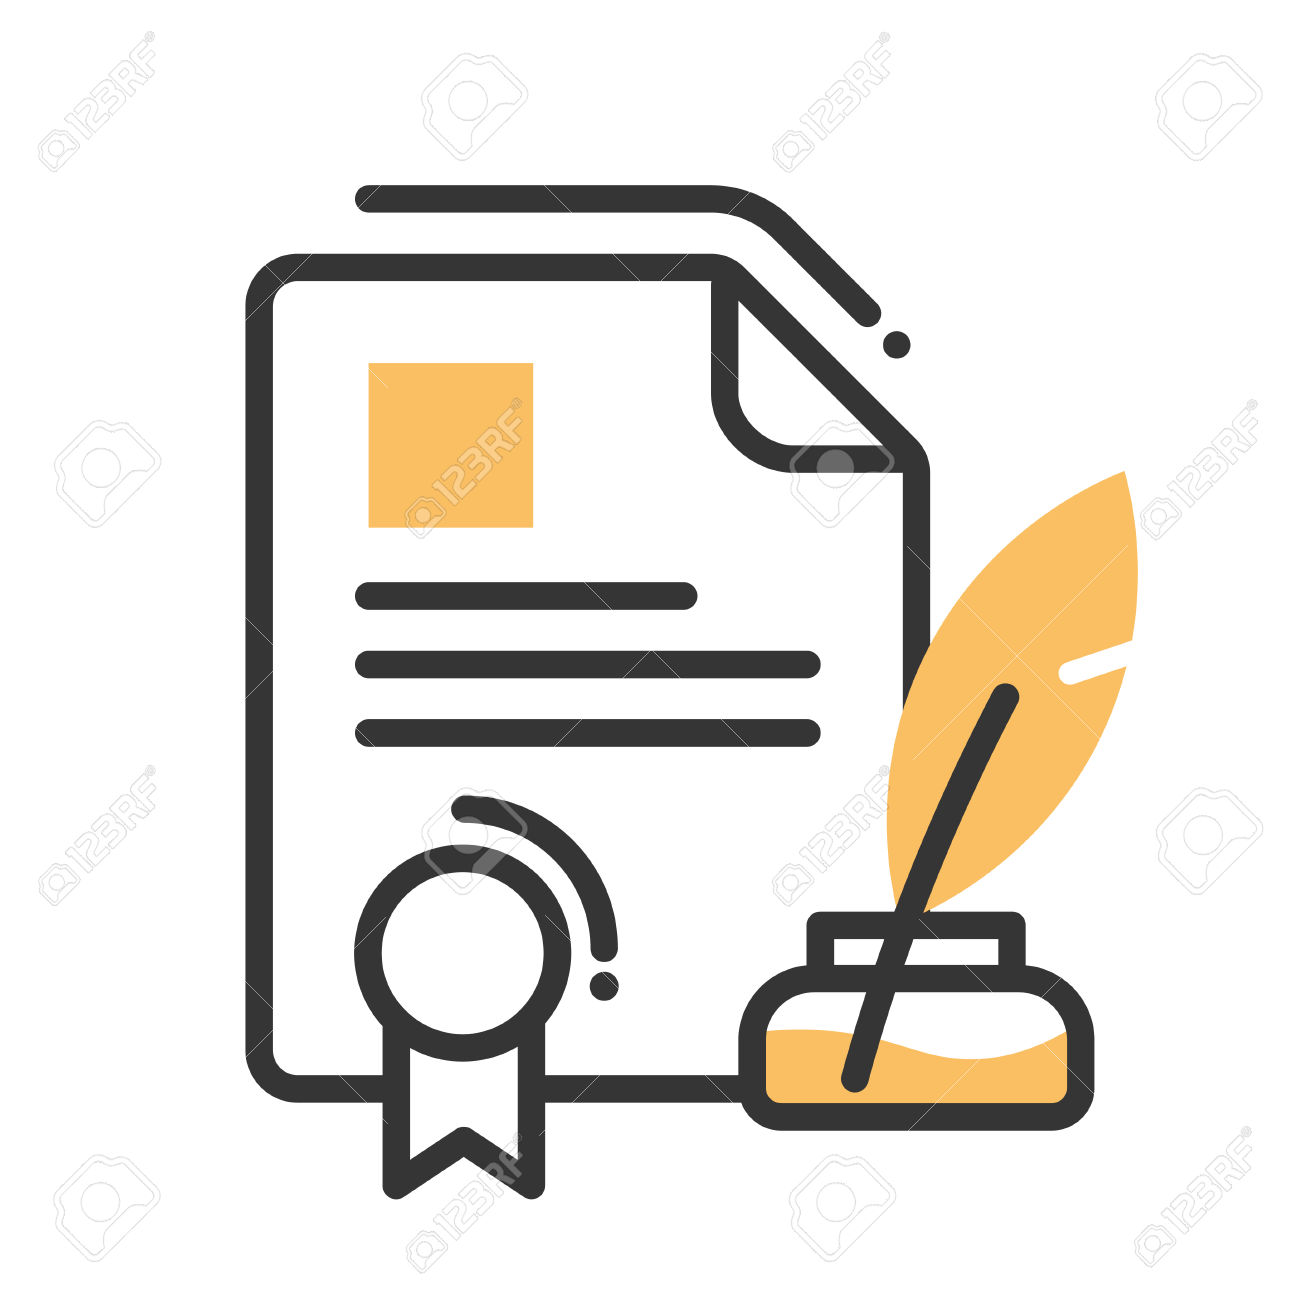 Contract clipart legal papers. Signing cliparts free download